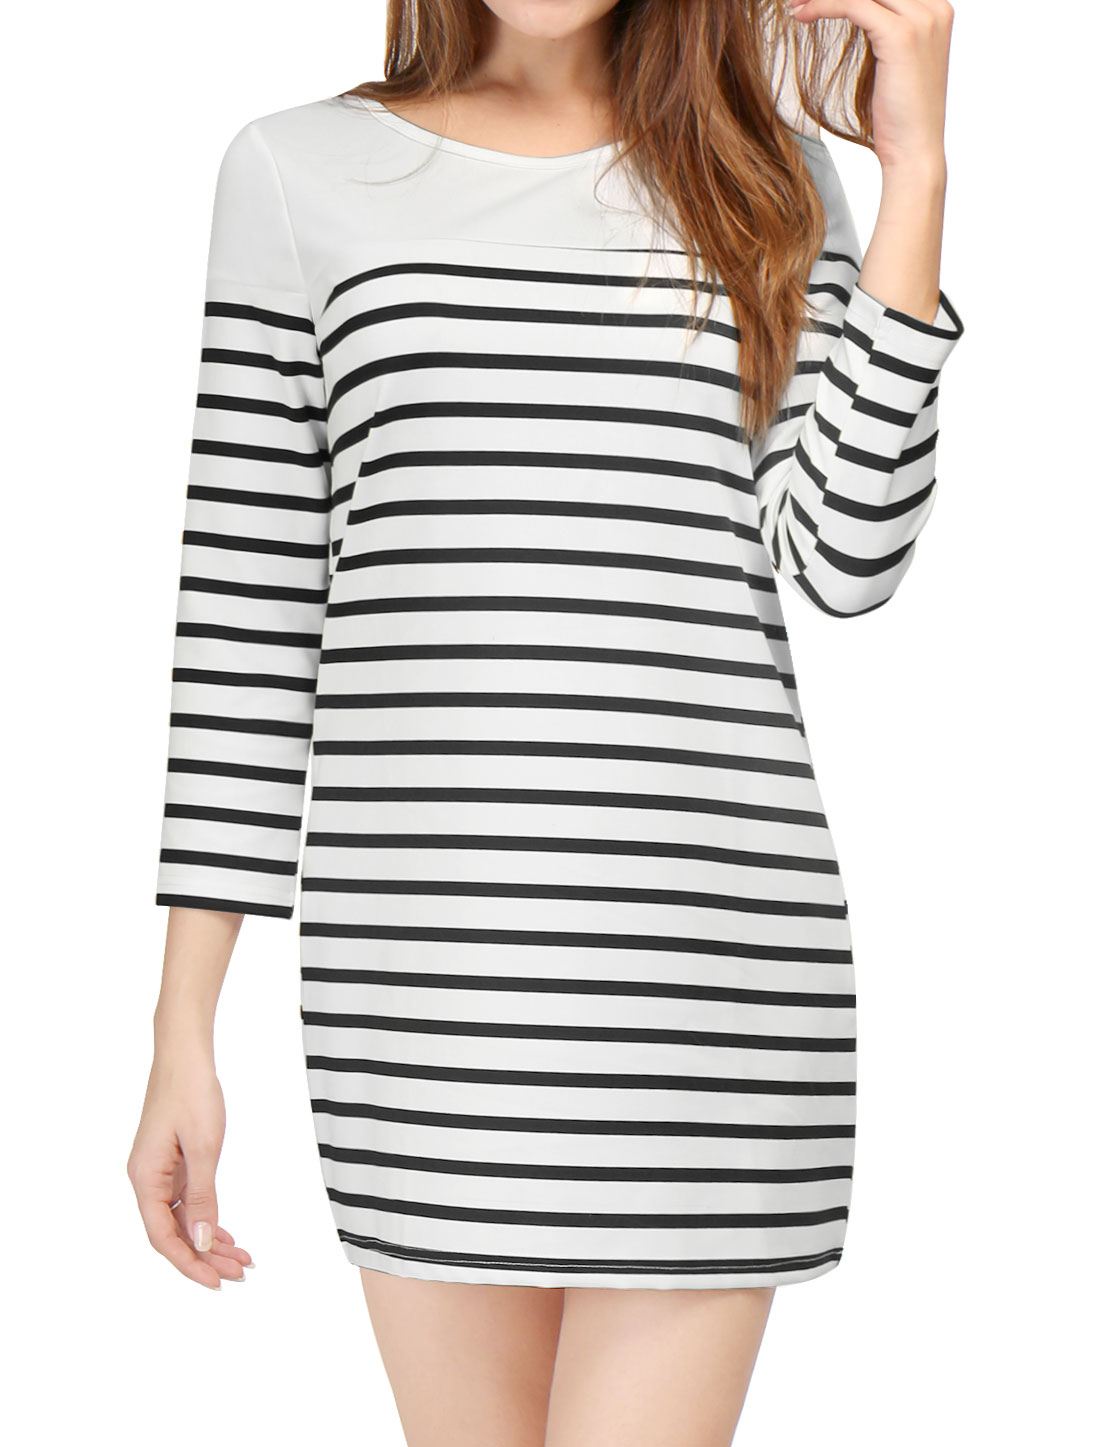 Women 3/4 Sleeves Heart Cutout Back Stripes Shift Dress White XL